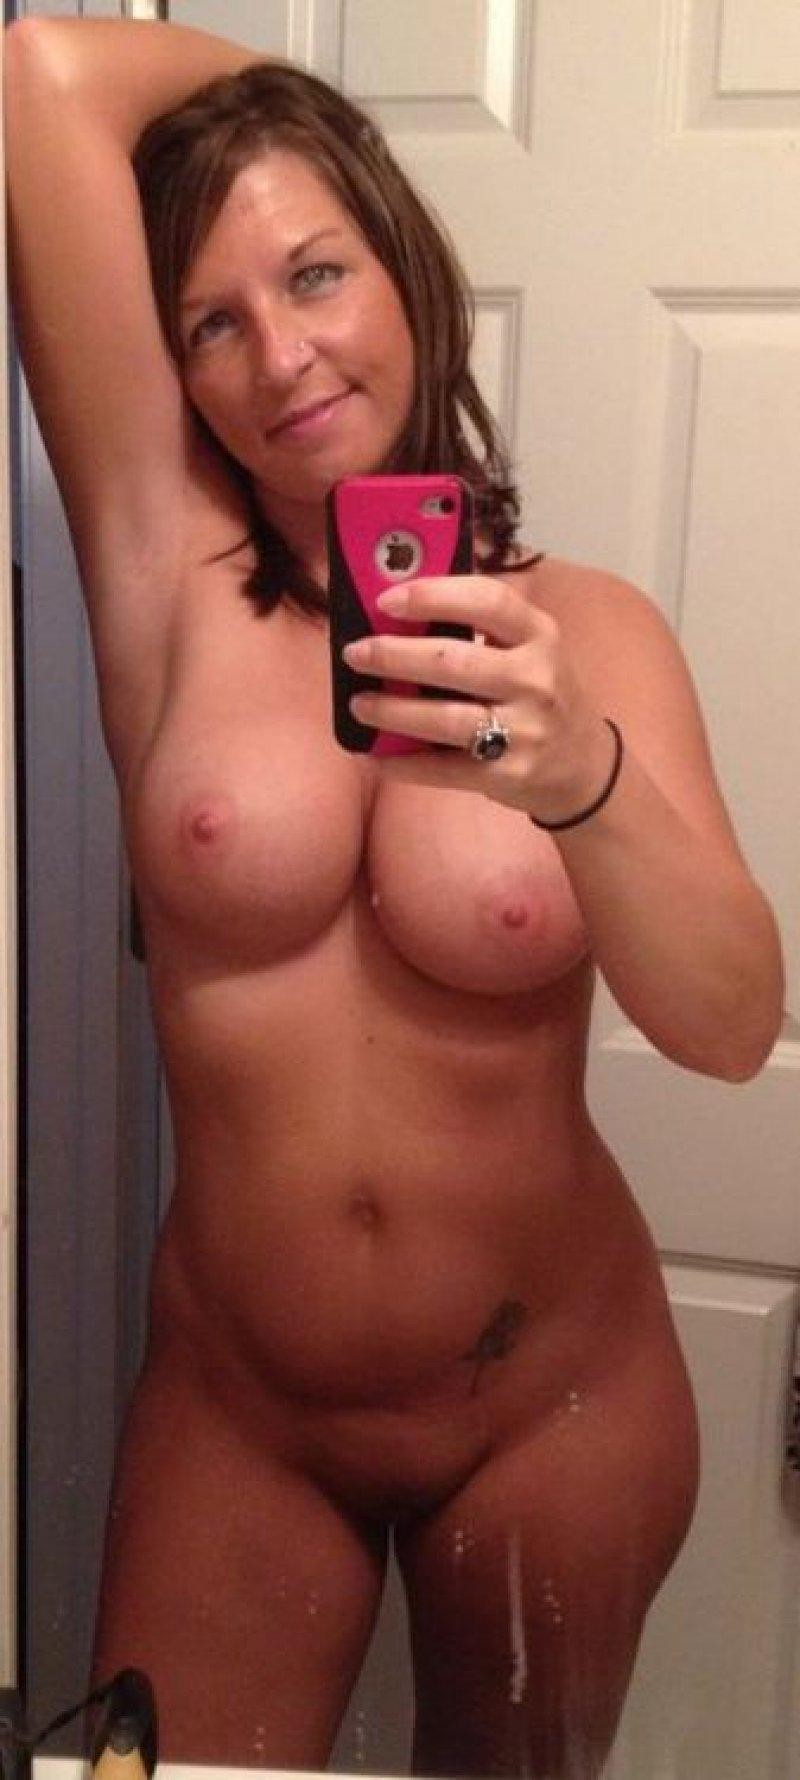 Cougar snaps off selfie while flashing her nude body